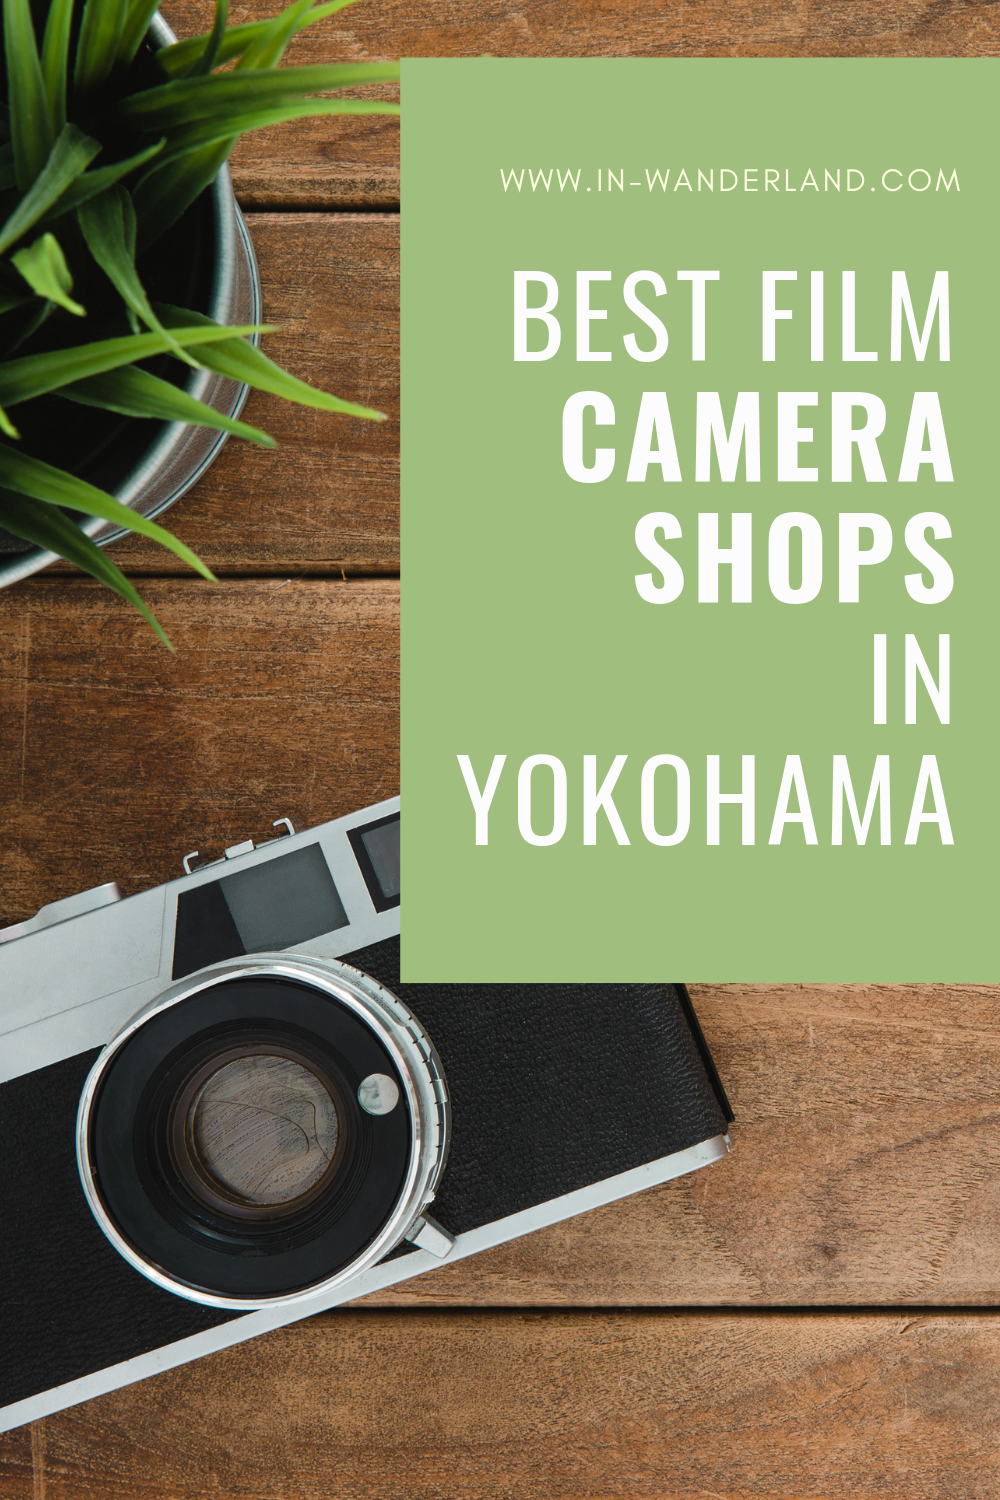 The Best Film Camera Stores in Yokohama, Japan